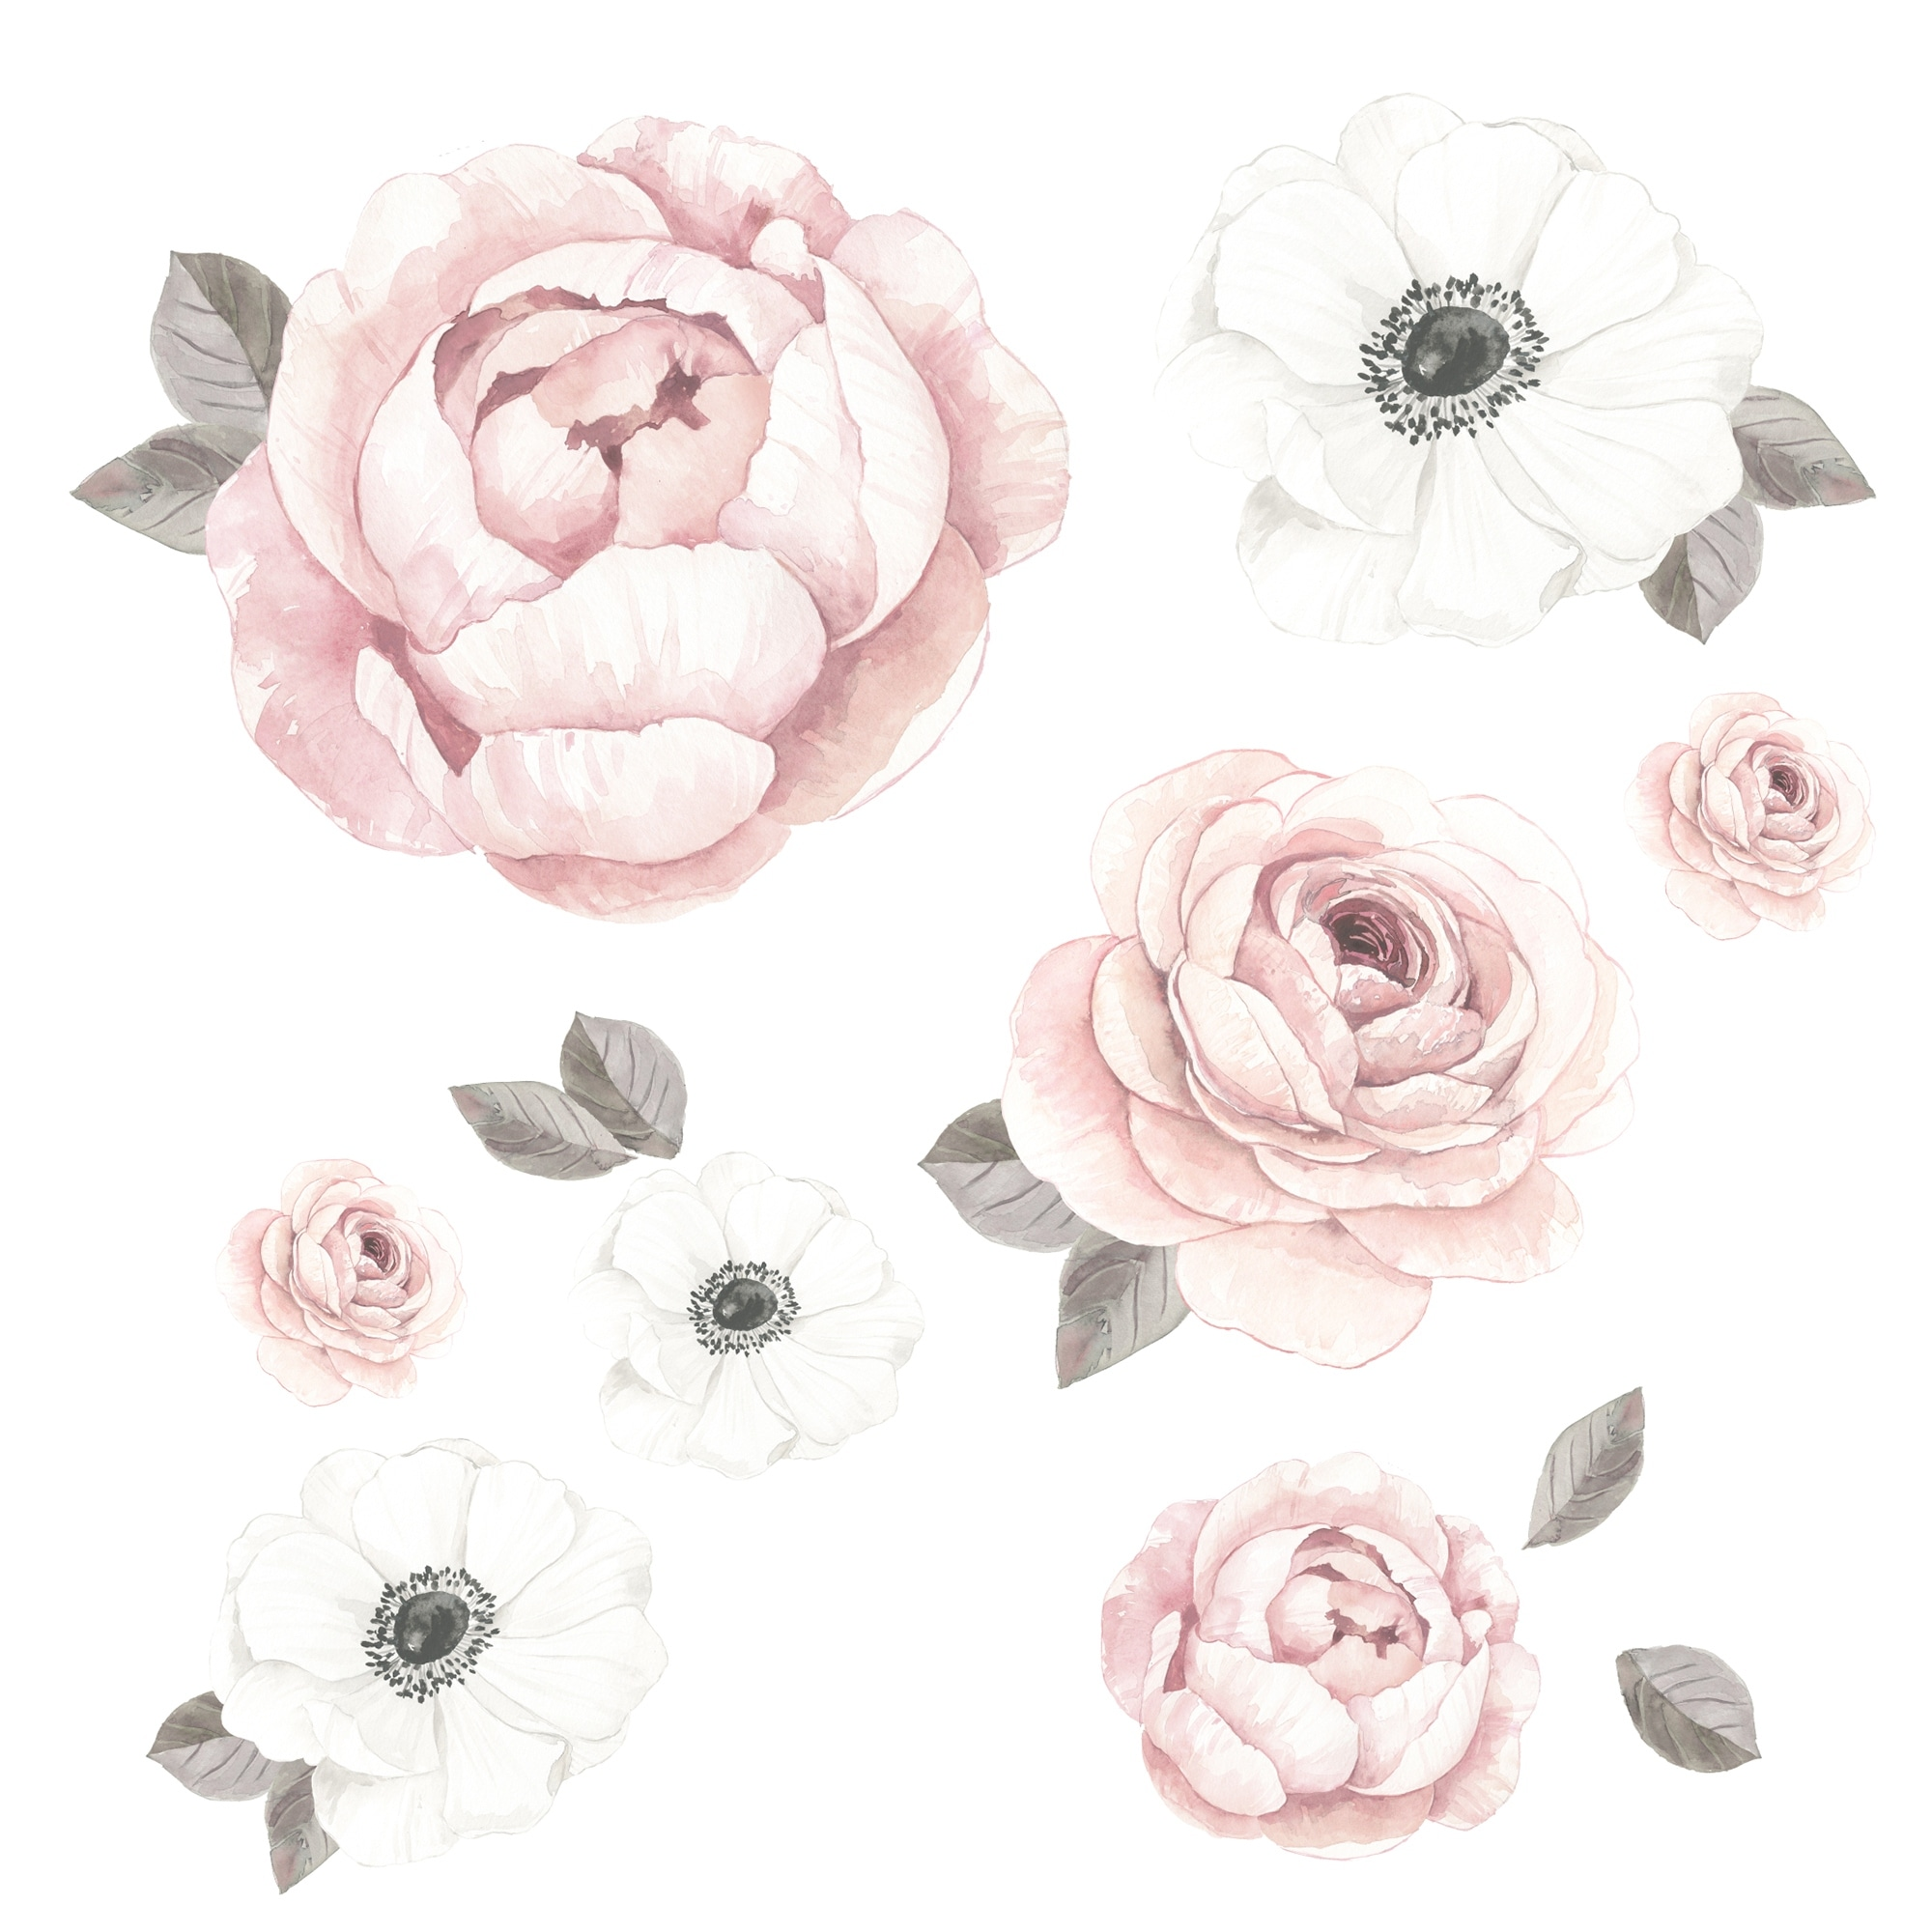 Lambs Ivy Floral Garden Large Pink White Watercolor Flowers Wall Decals Overstock 30939286